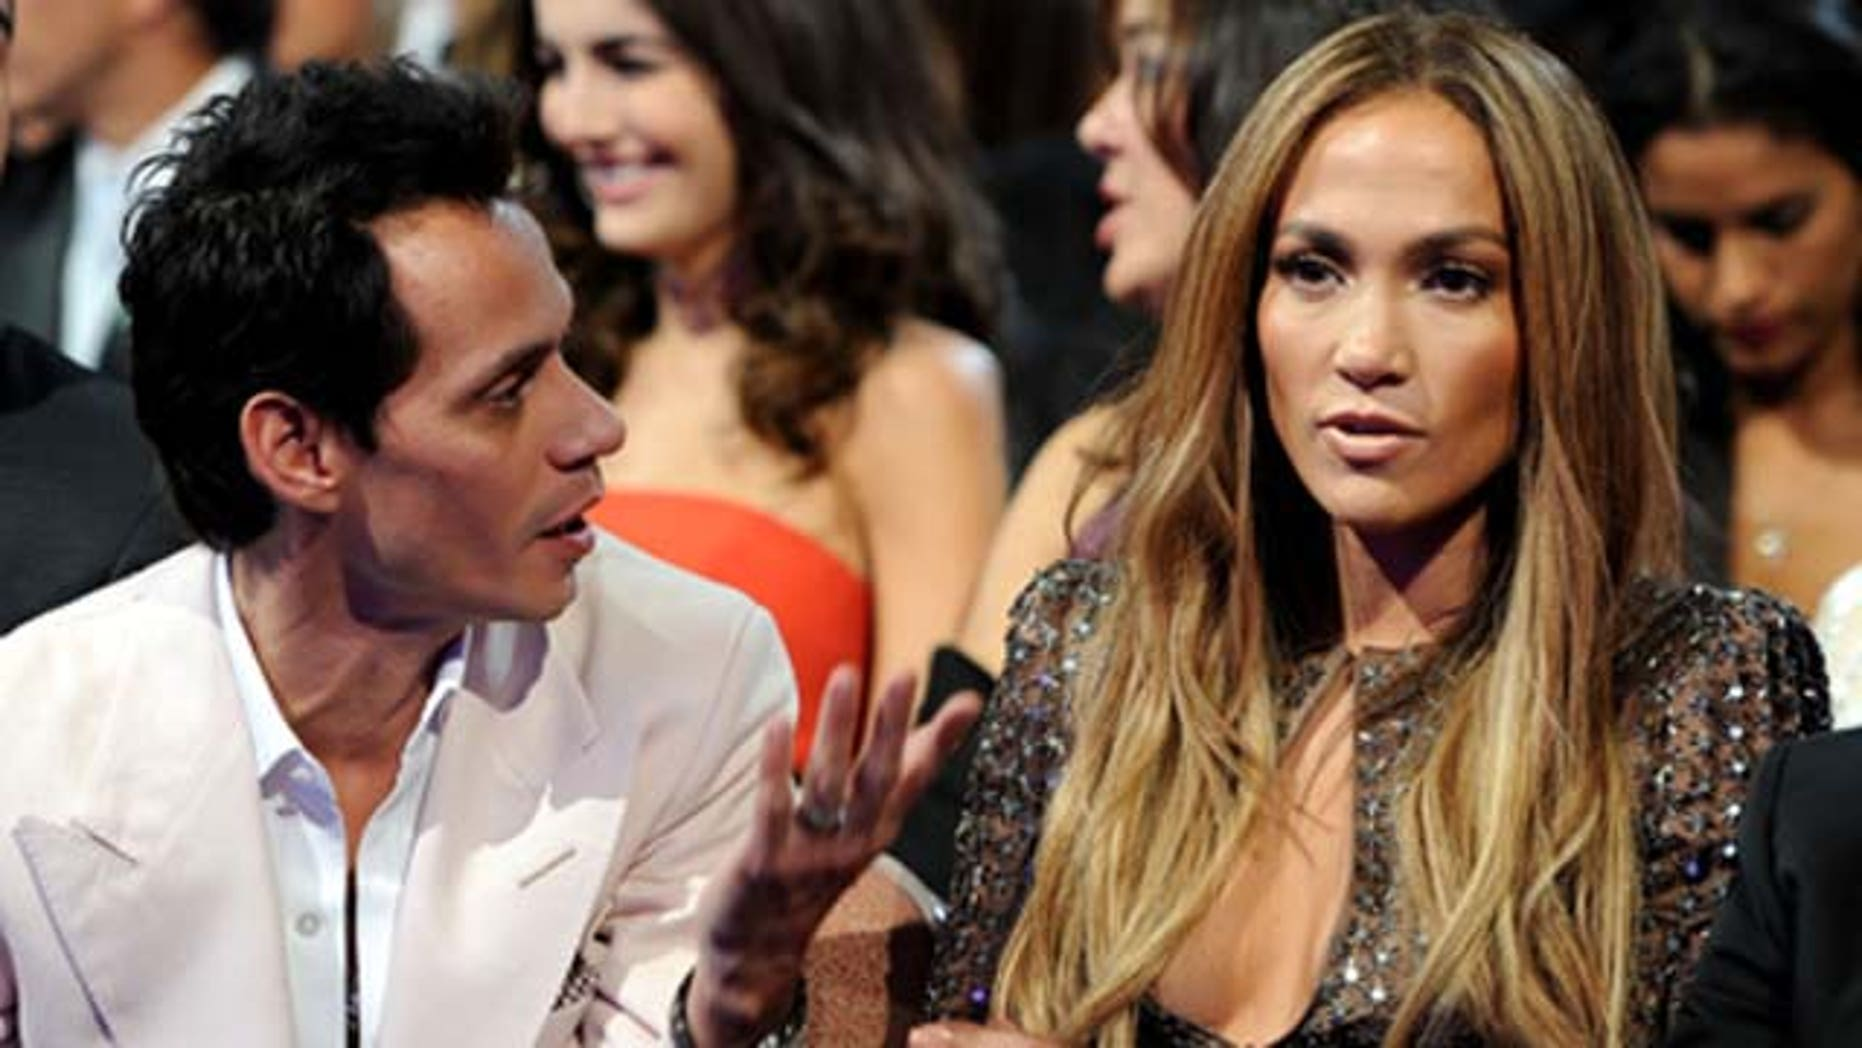 Nov. 11, 2010: Singers Marc Anthony and Jennifer Lopez in audience during the 11th annual Latin Grammy Awards at the Mandalay Bay Events Center in Las Vegas, Nev.